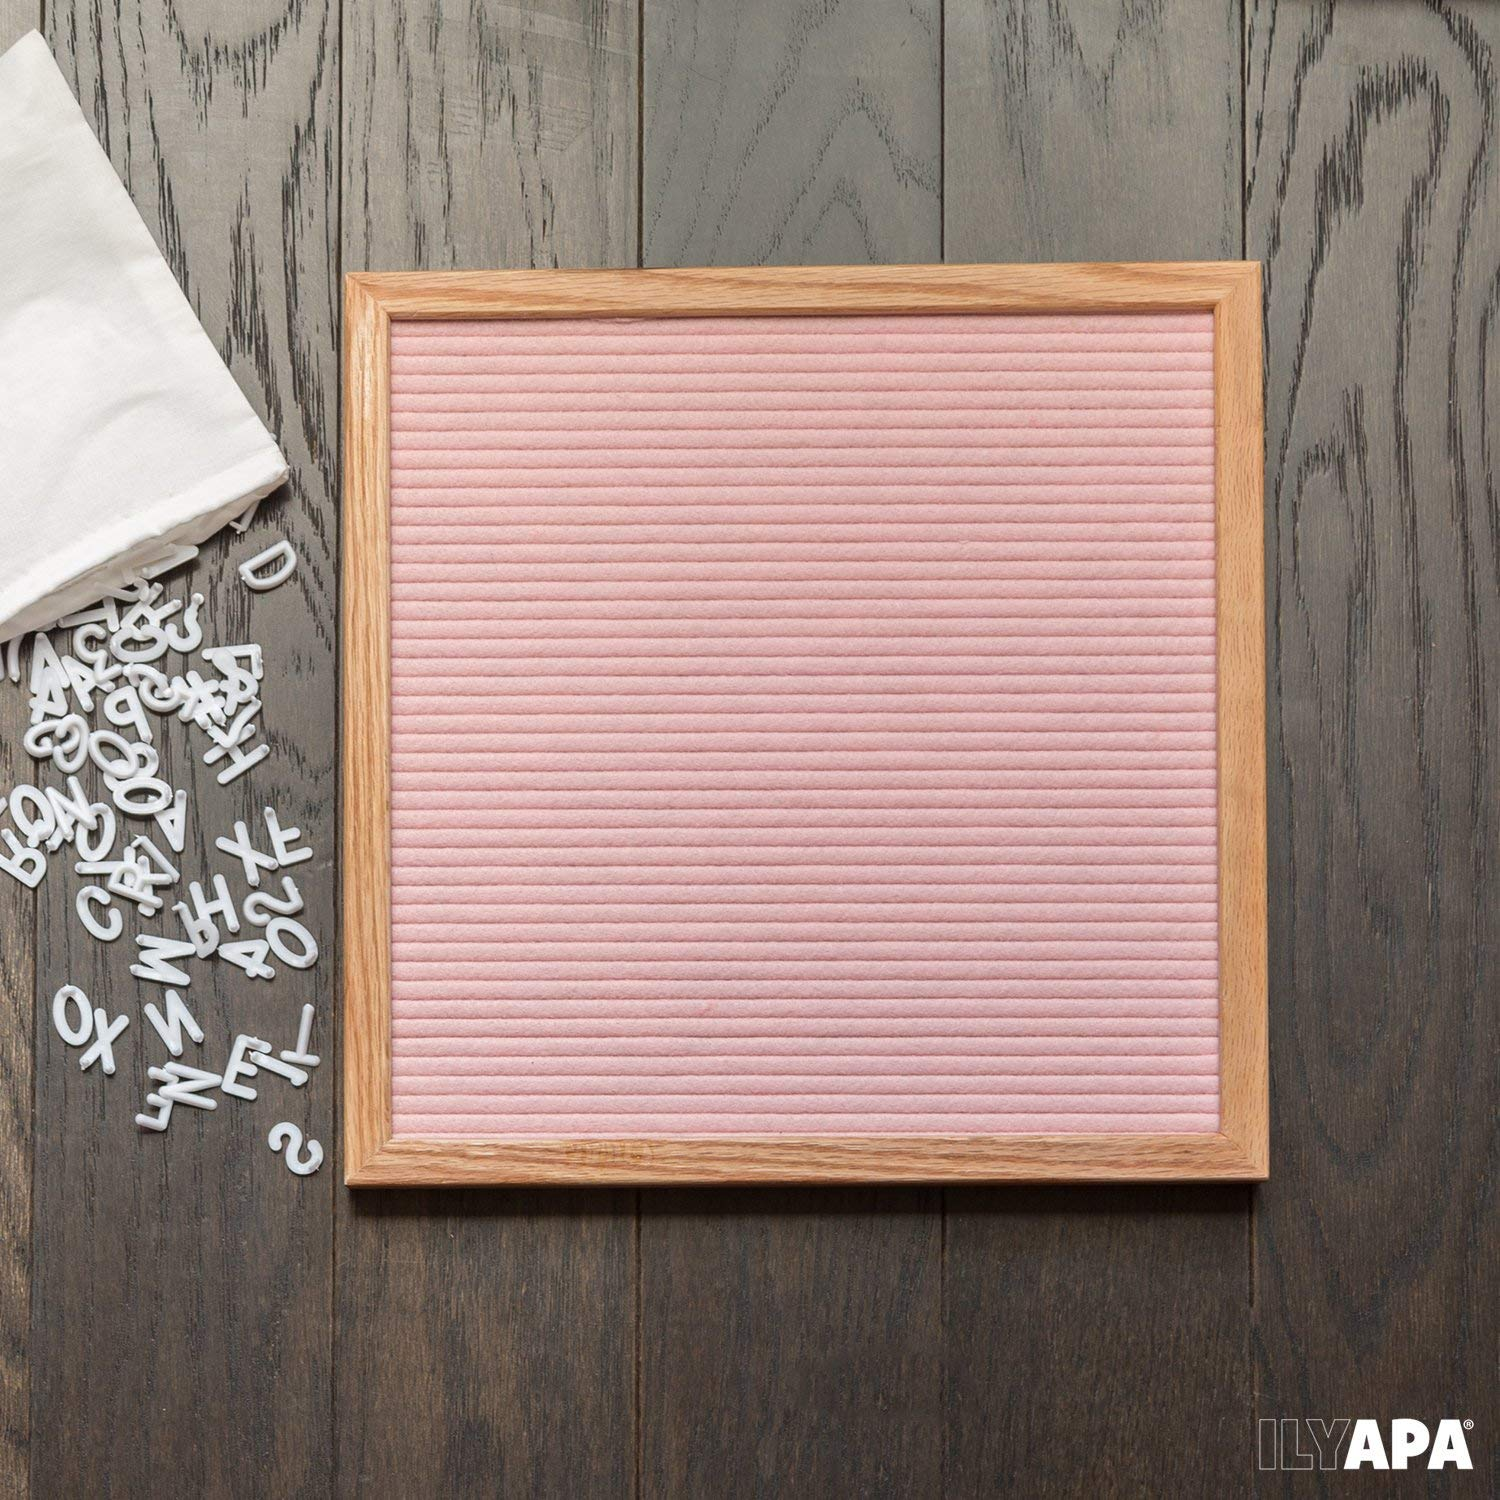 Pink Felt Letter Board With 510 Letters, Numbers & Symbols-25x25cm Changeable Wooden Message Board Sign